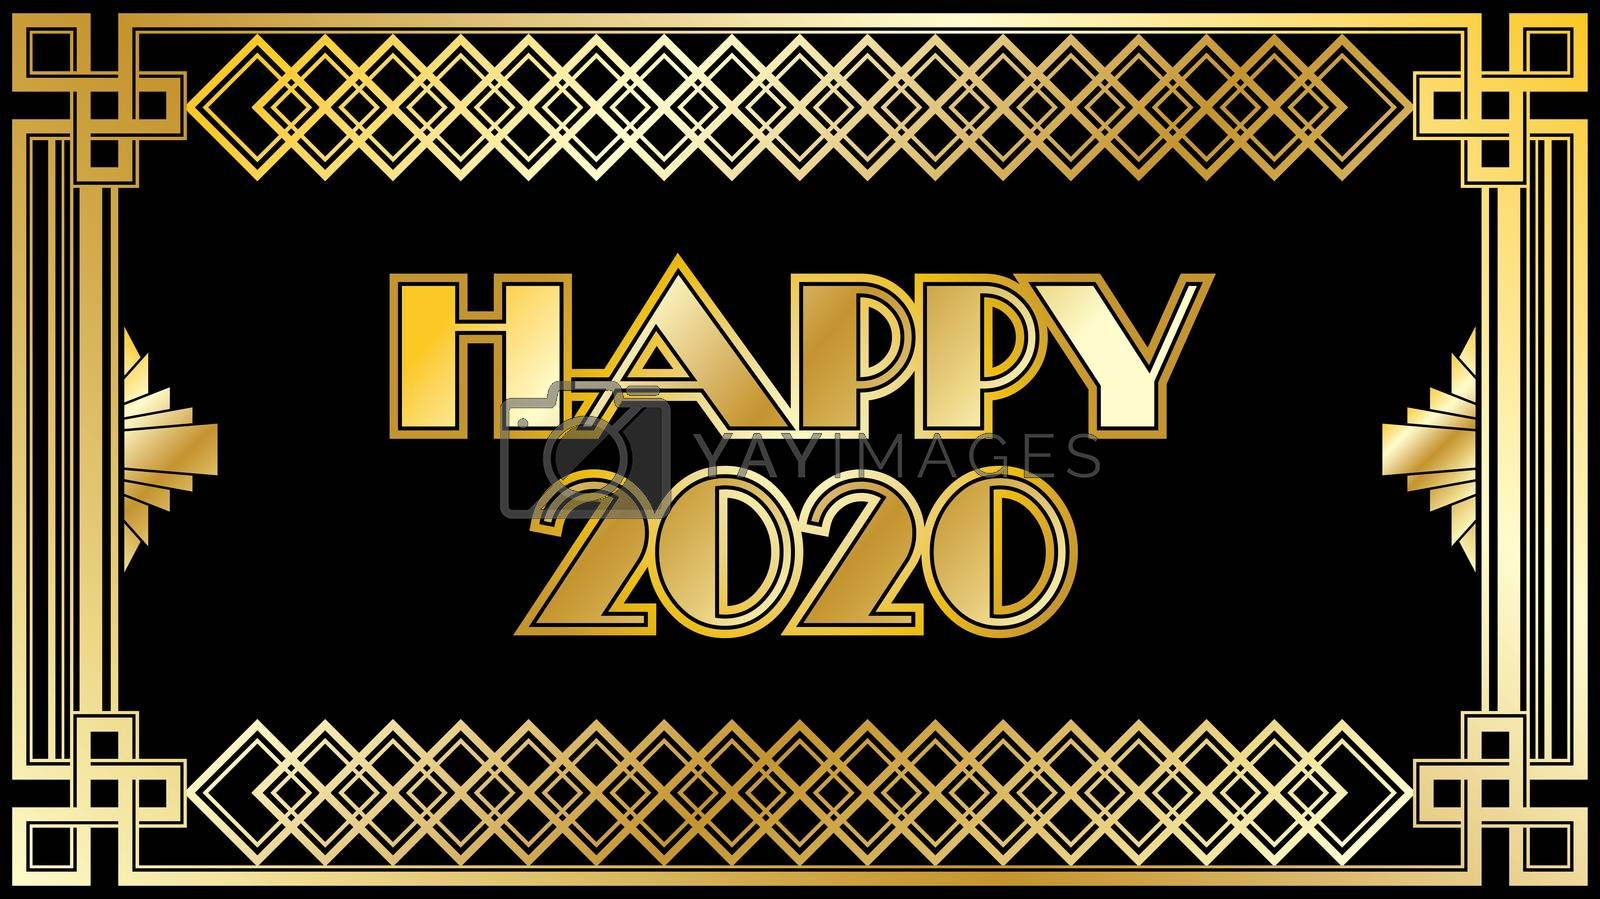 2020 New years Countdown clock changing numeral with festive background and gold type